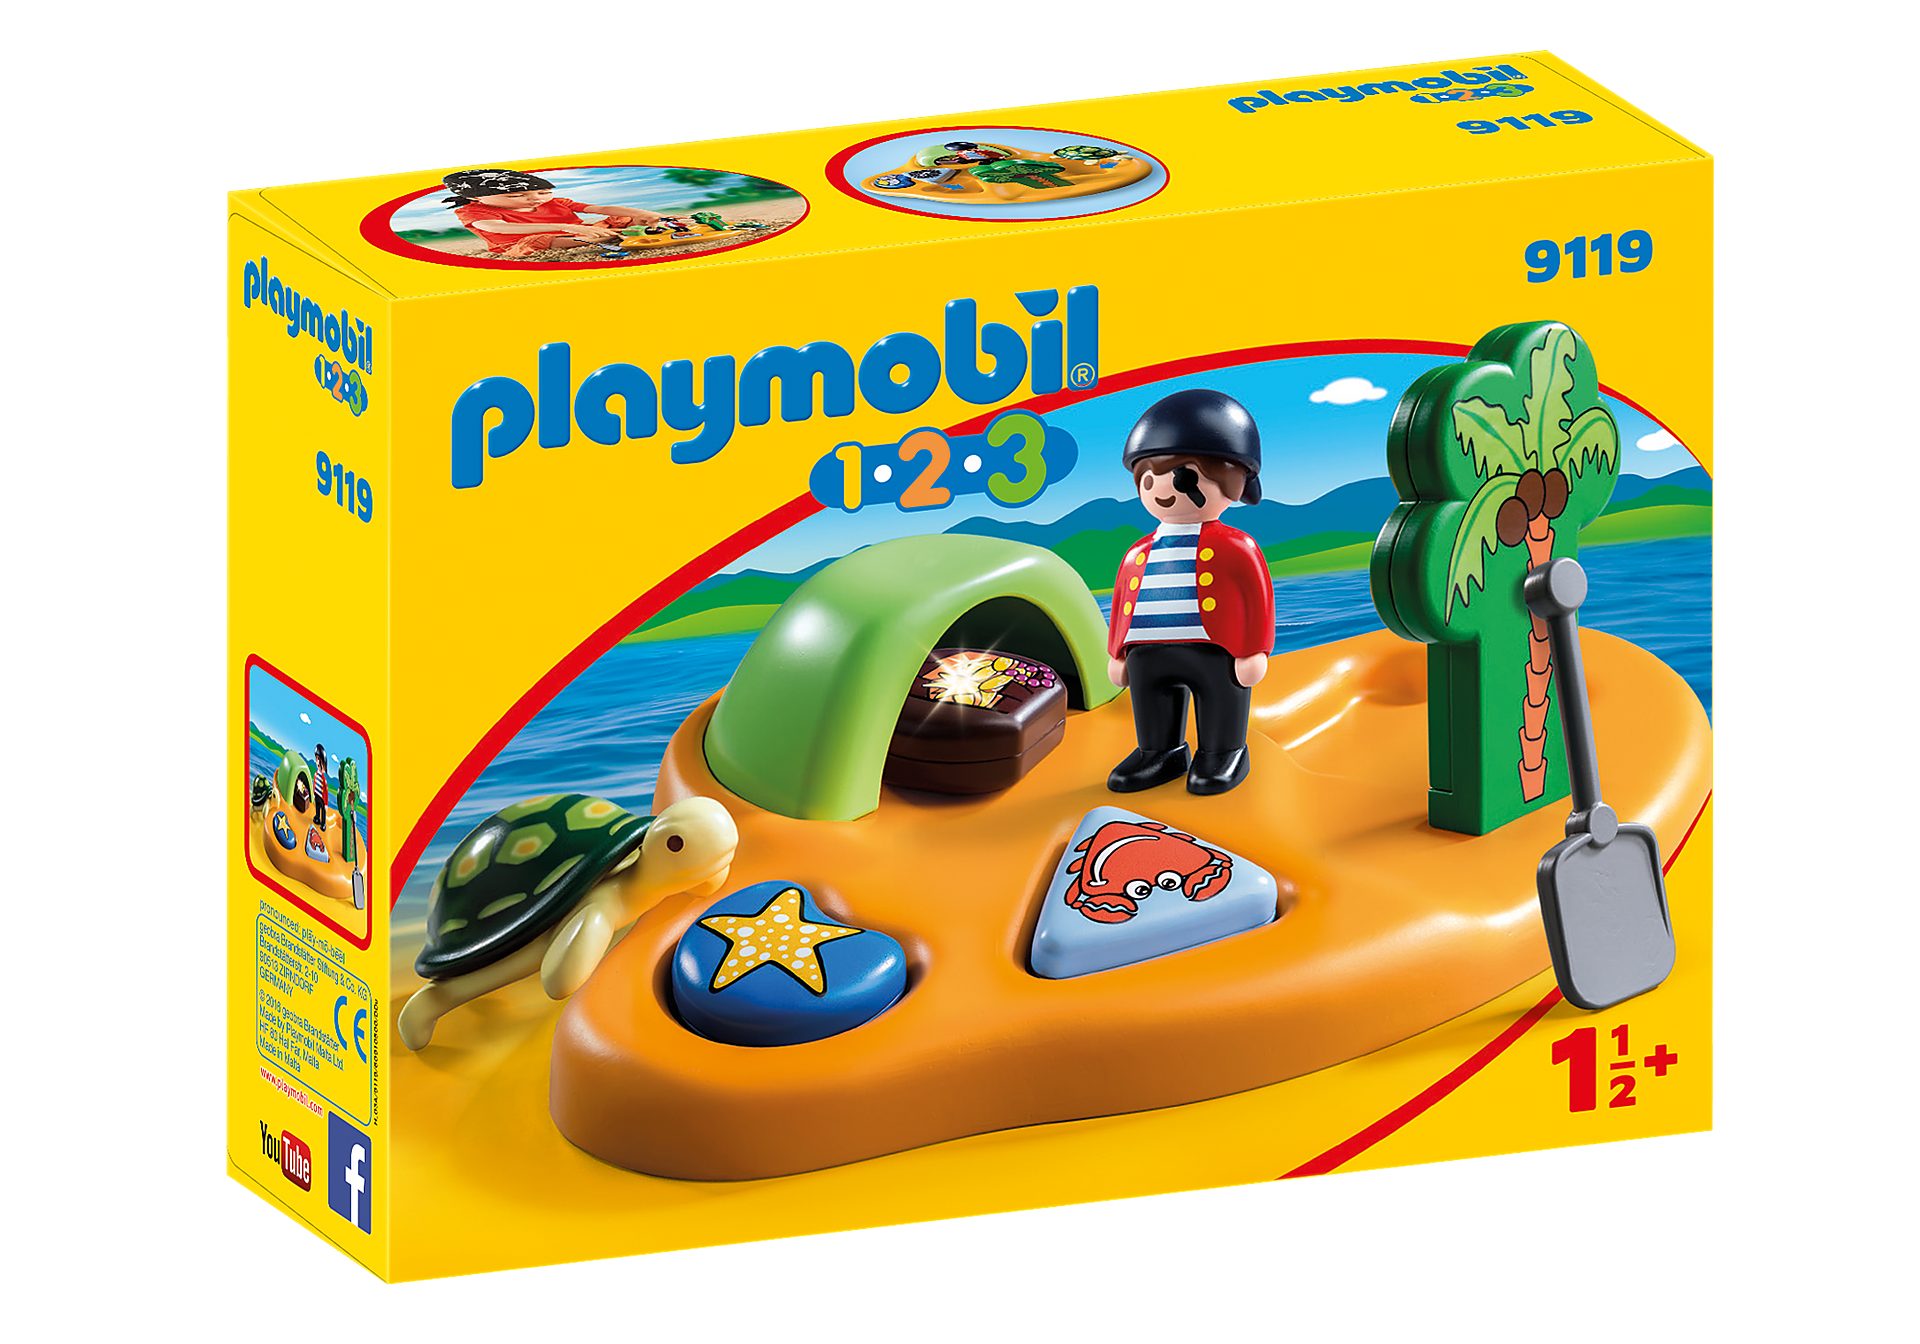 http://media.playmobil.com/i/playmobil/9119_product_box_front/1.2.3 Pirateneiland